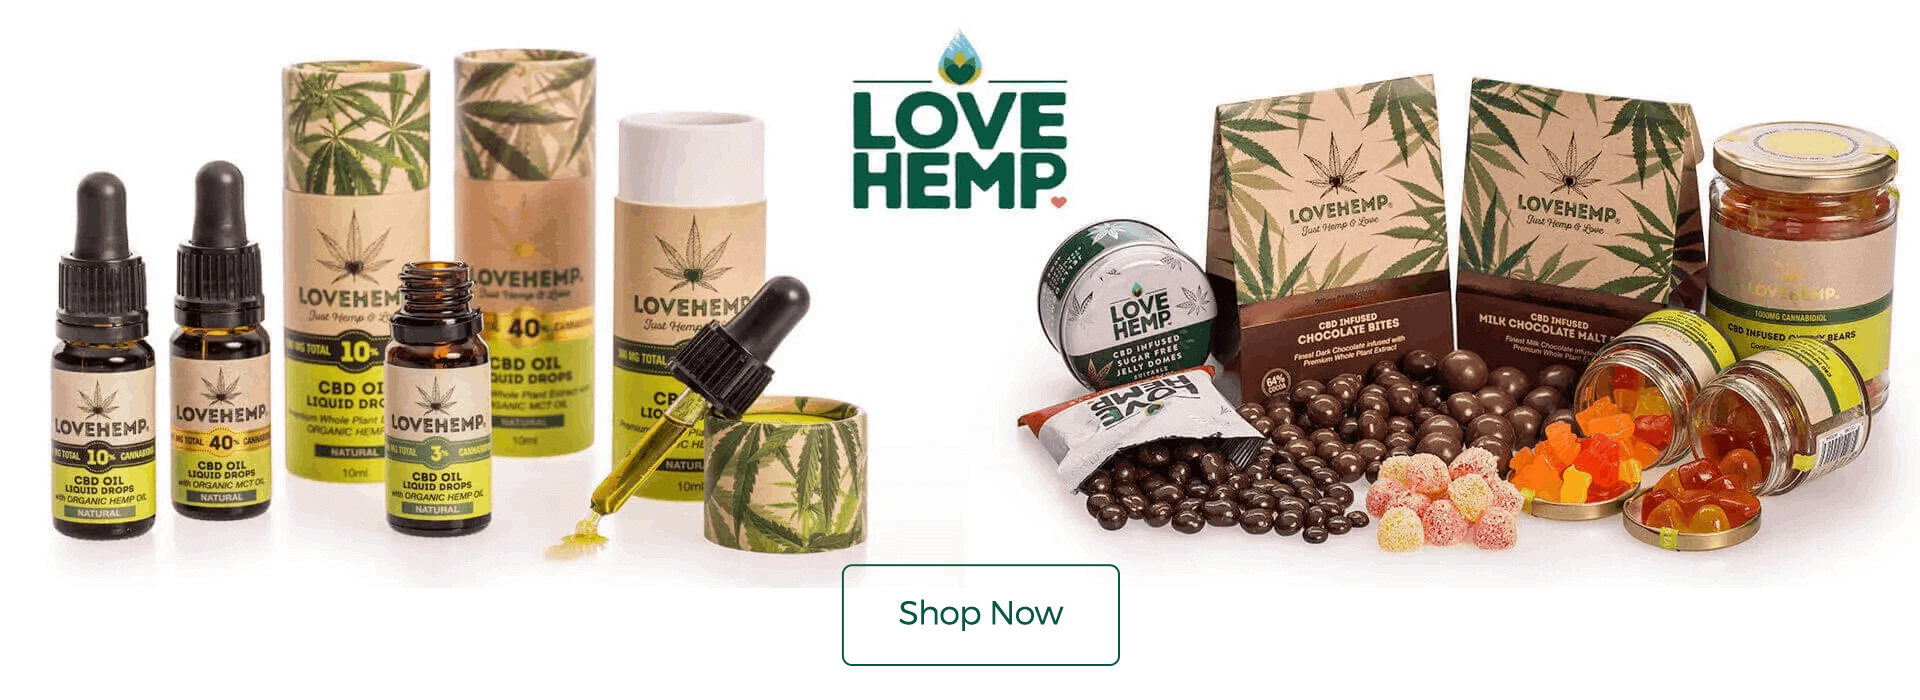 love-hemp-products-deals-discount-offers-coupon-promo-codes-reviews banner (1)